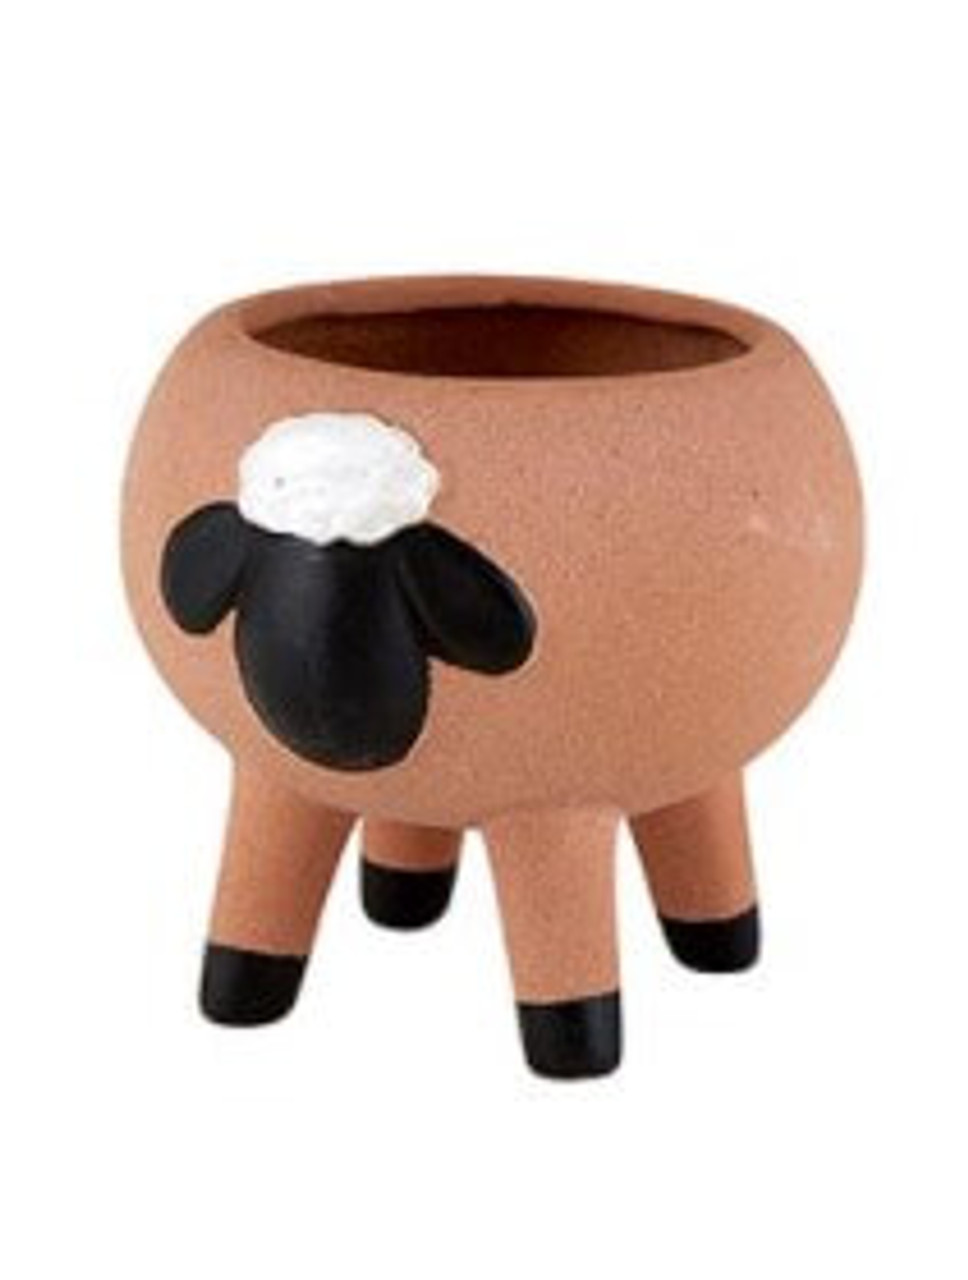 """This adorable ceramic planter features a unique animal design. Great for adding stylish touch to your home and office décor. 2 7/8"""" x 2 7/8"""""""